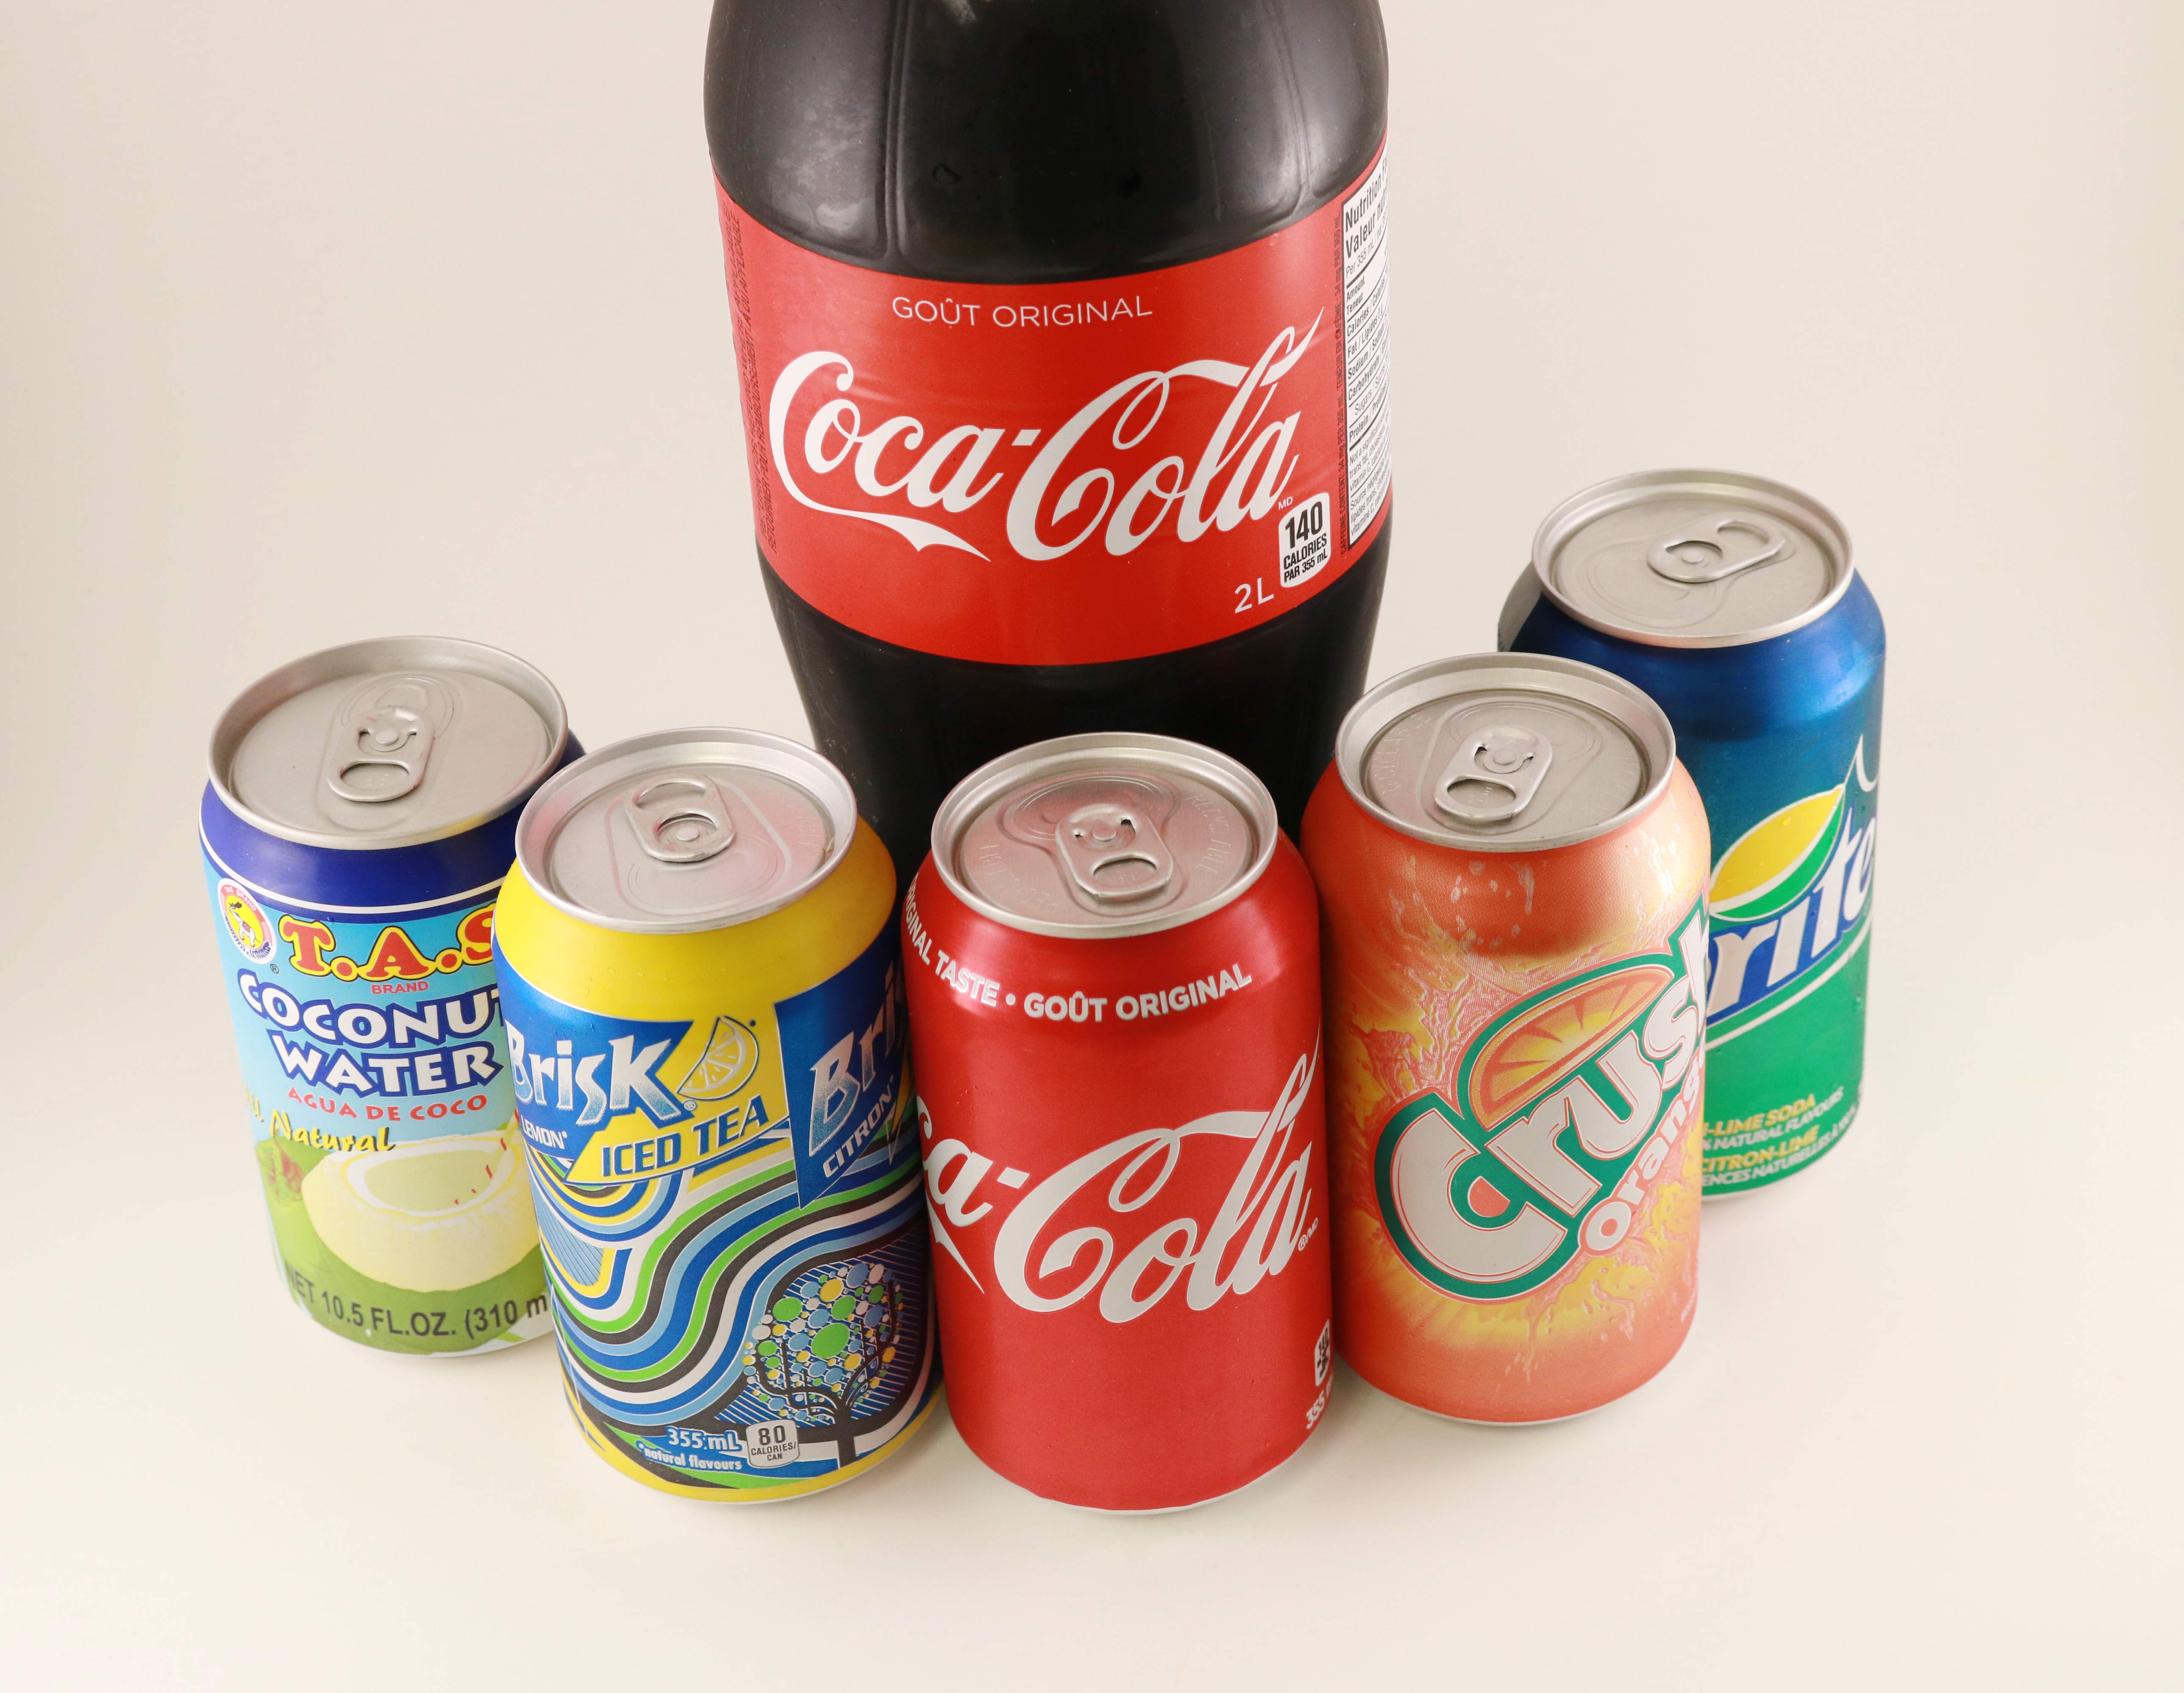 Cans Image